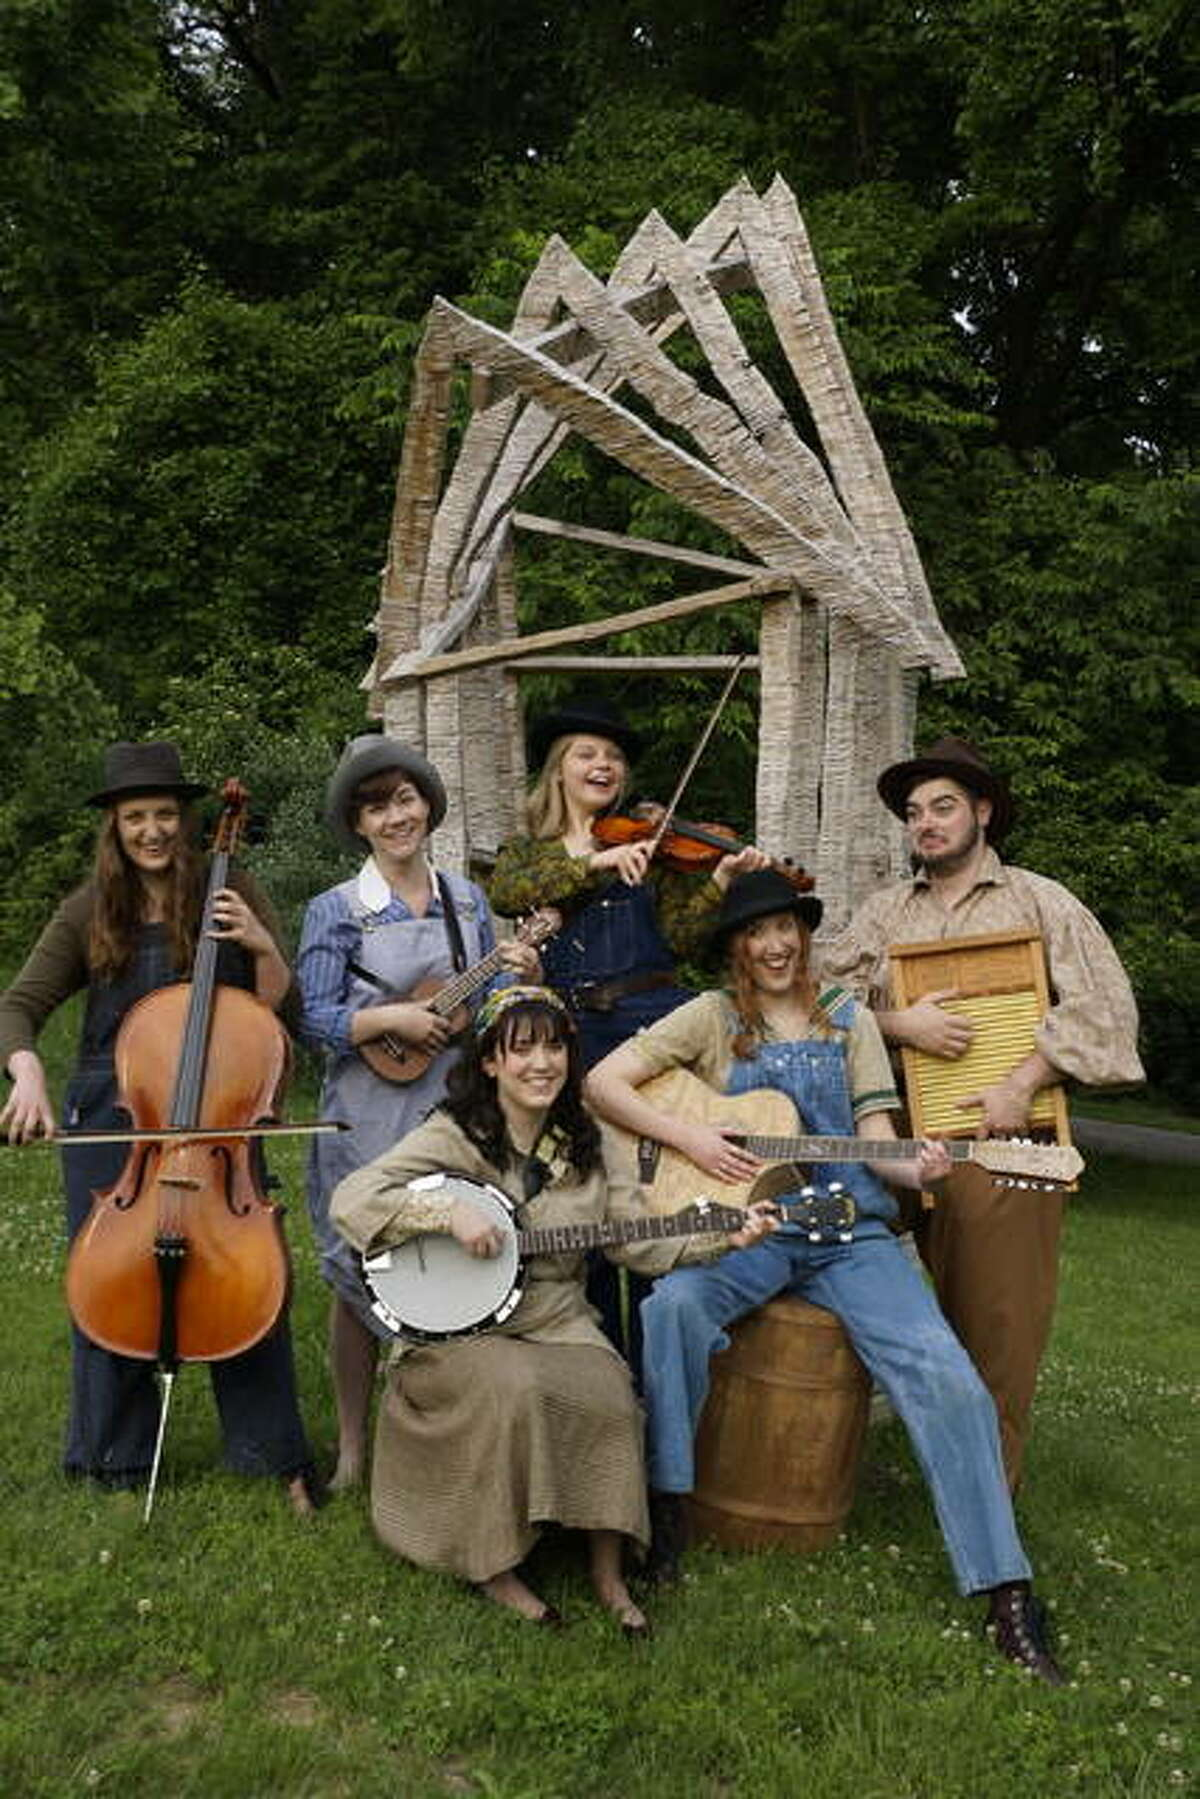 """Summer Baer (banjo) and Lisa Hinrichs (guitar), and back row, from left, Sara Naumann (cello), Ashley Bauman (ukulele), Sarah Lantsberger (fiddle) and David Zimmerman (washboard) in """"As You Like It,"""" as part of Southern Illinois University Edwardsville's Summer Theater Festival."""